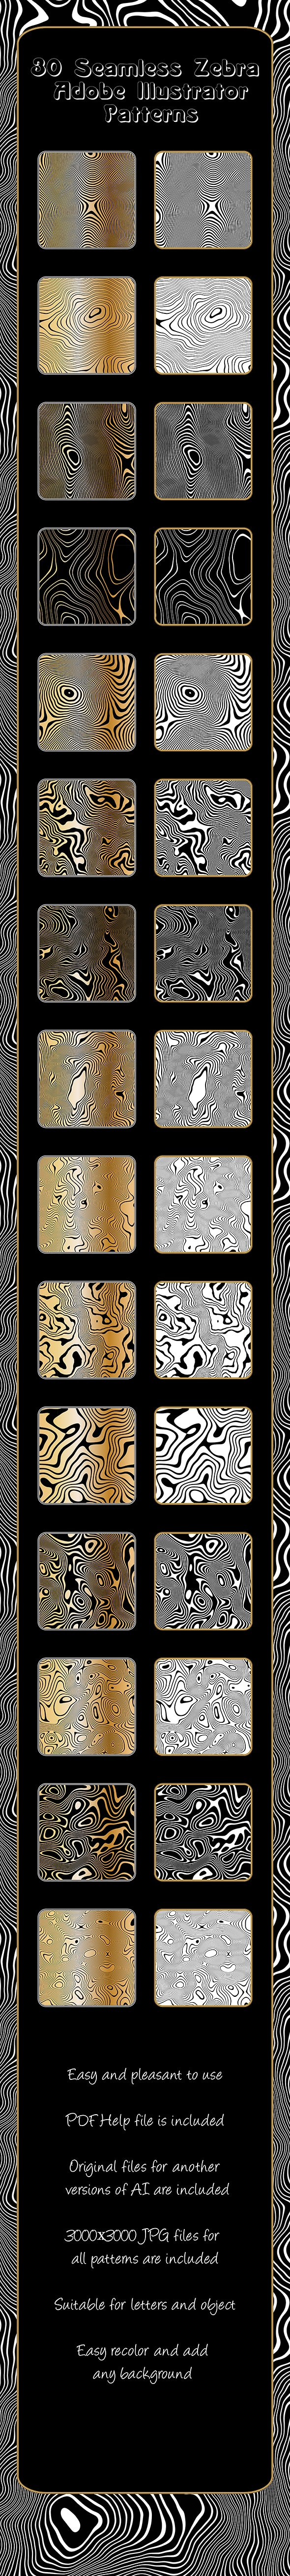 Zebra Repeating Adobe Illustrator Patterns - 30 Seamless Moire Animalistic Vector Filling - Nature Textures / Fills / Patterns